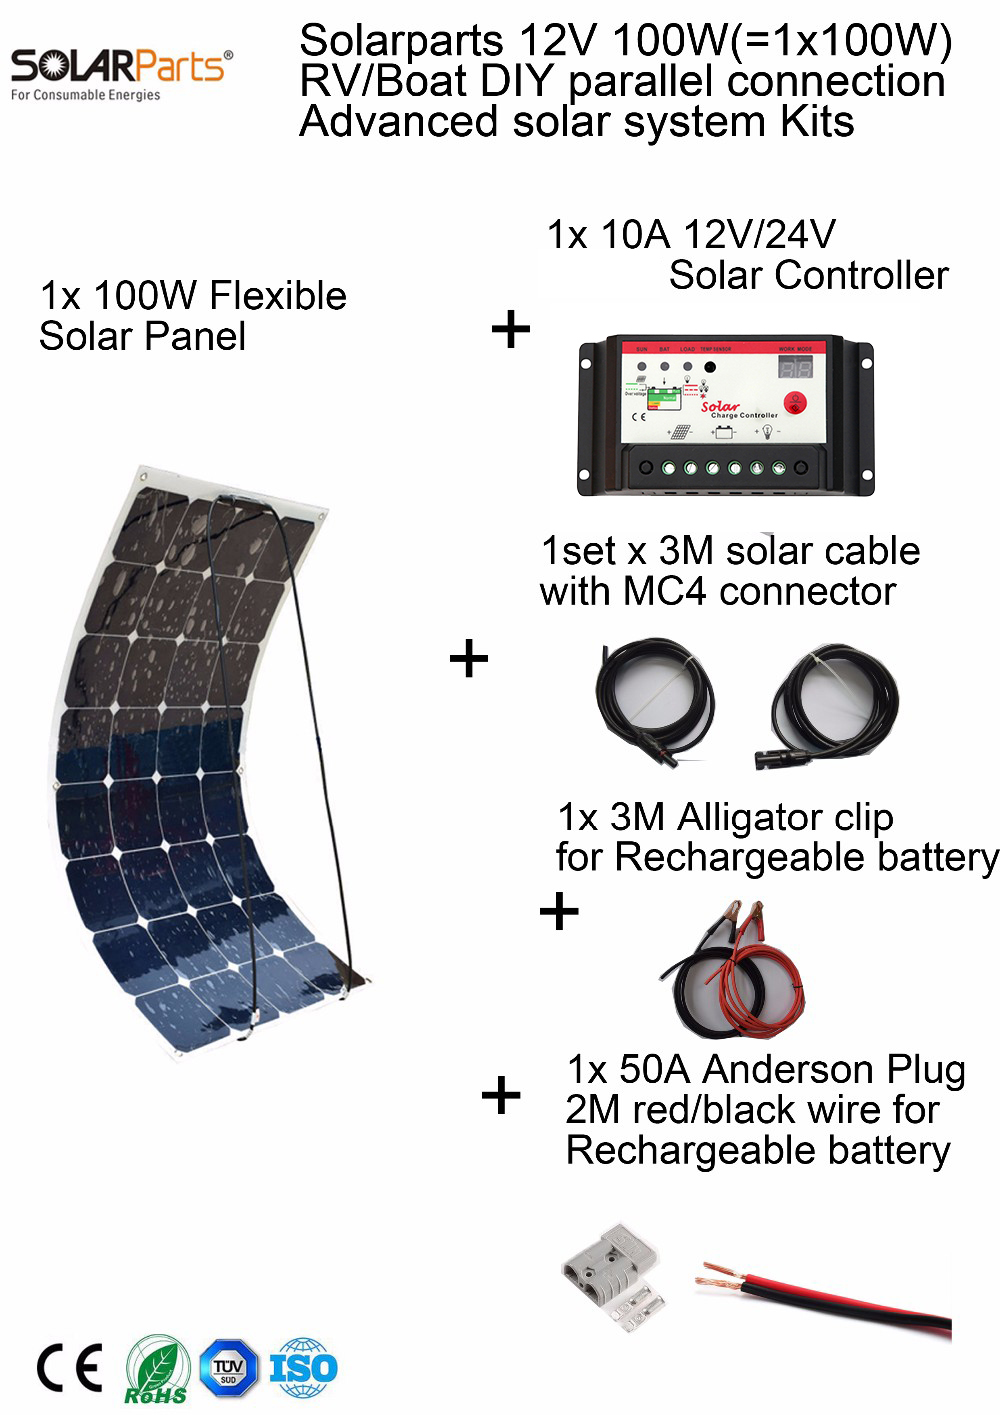 Solarparts 100W DIY RV/Marine Kits Solar System 1x100W flexible solar panel 12V,1x 10A 12V solar controller set cables cheap . solarparts 100w diy rv marine kits solar system1x100w flexible solar panel 12v 1 x10a 12v 24v solar controller set cables cheap